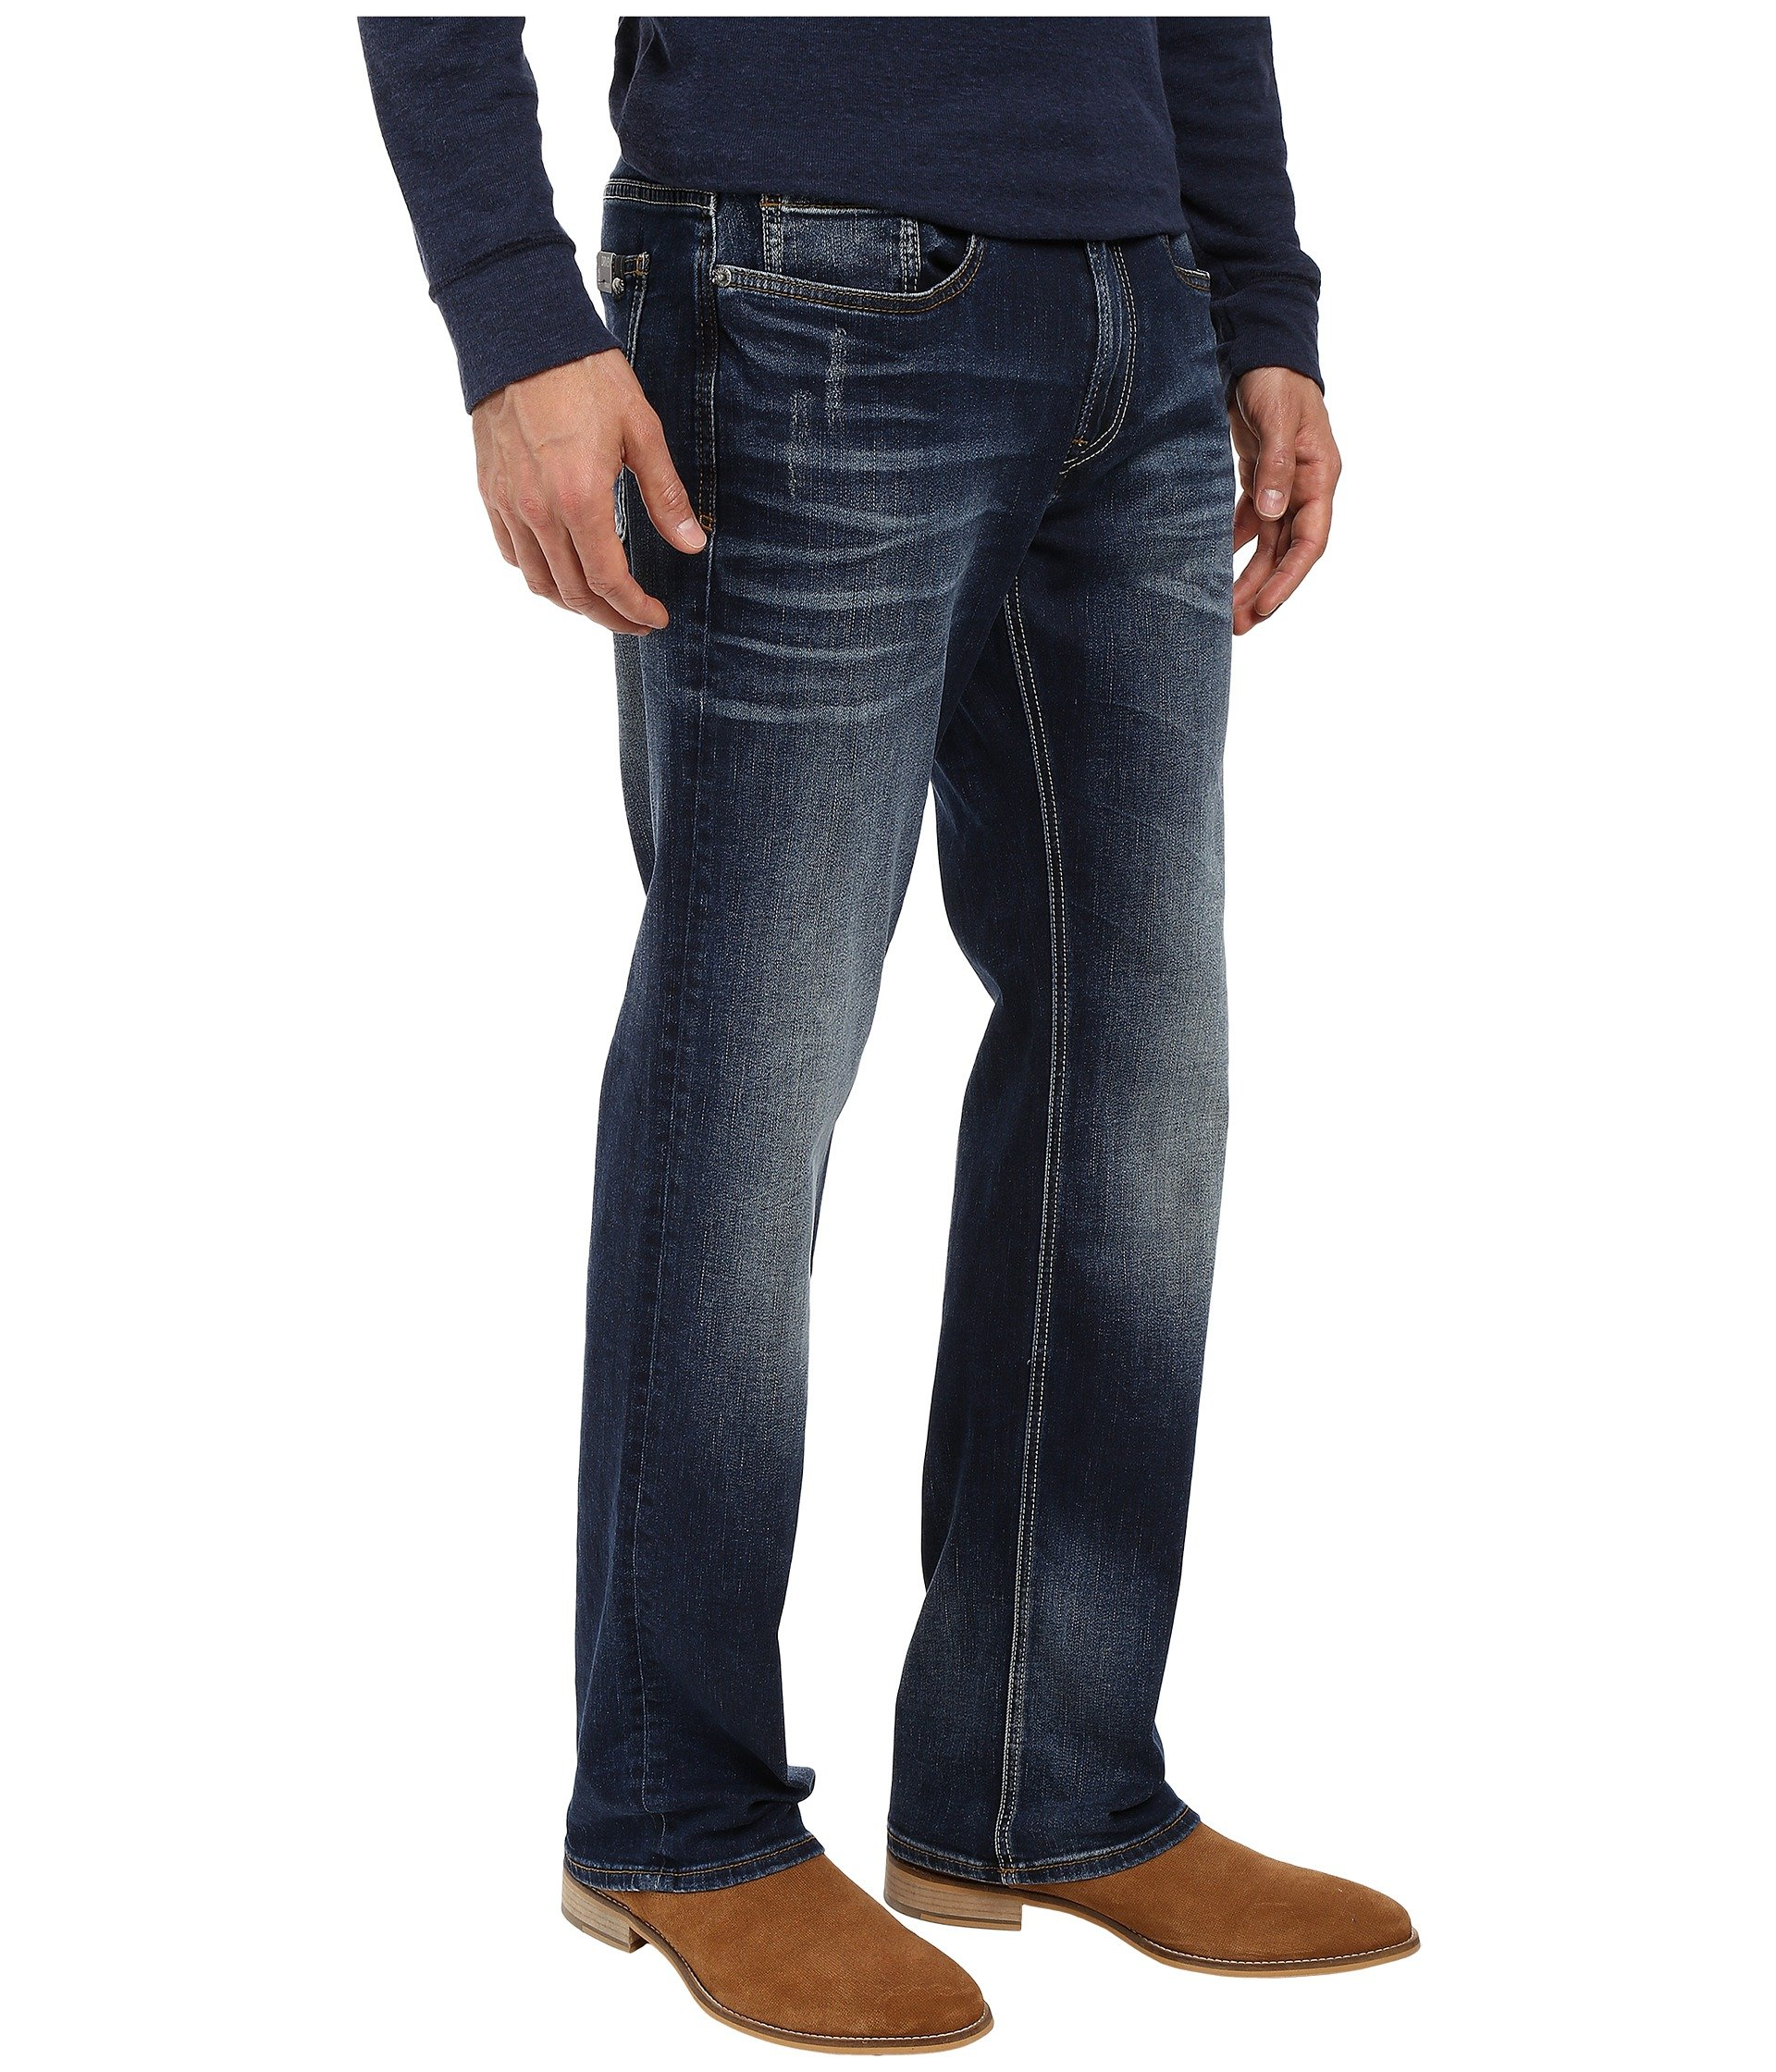 Contrast Buffalo Vintage Bitton Straight Driven Leg In Jeans Relaxed David 6Cwpq6gTP